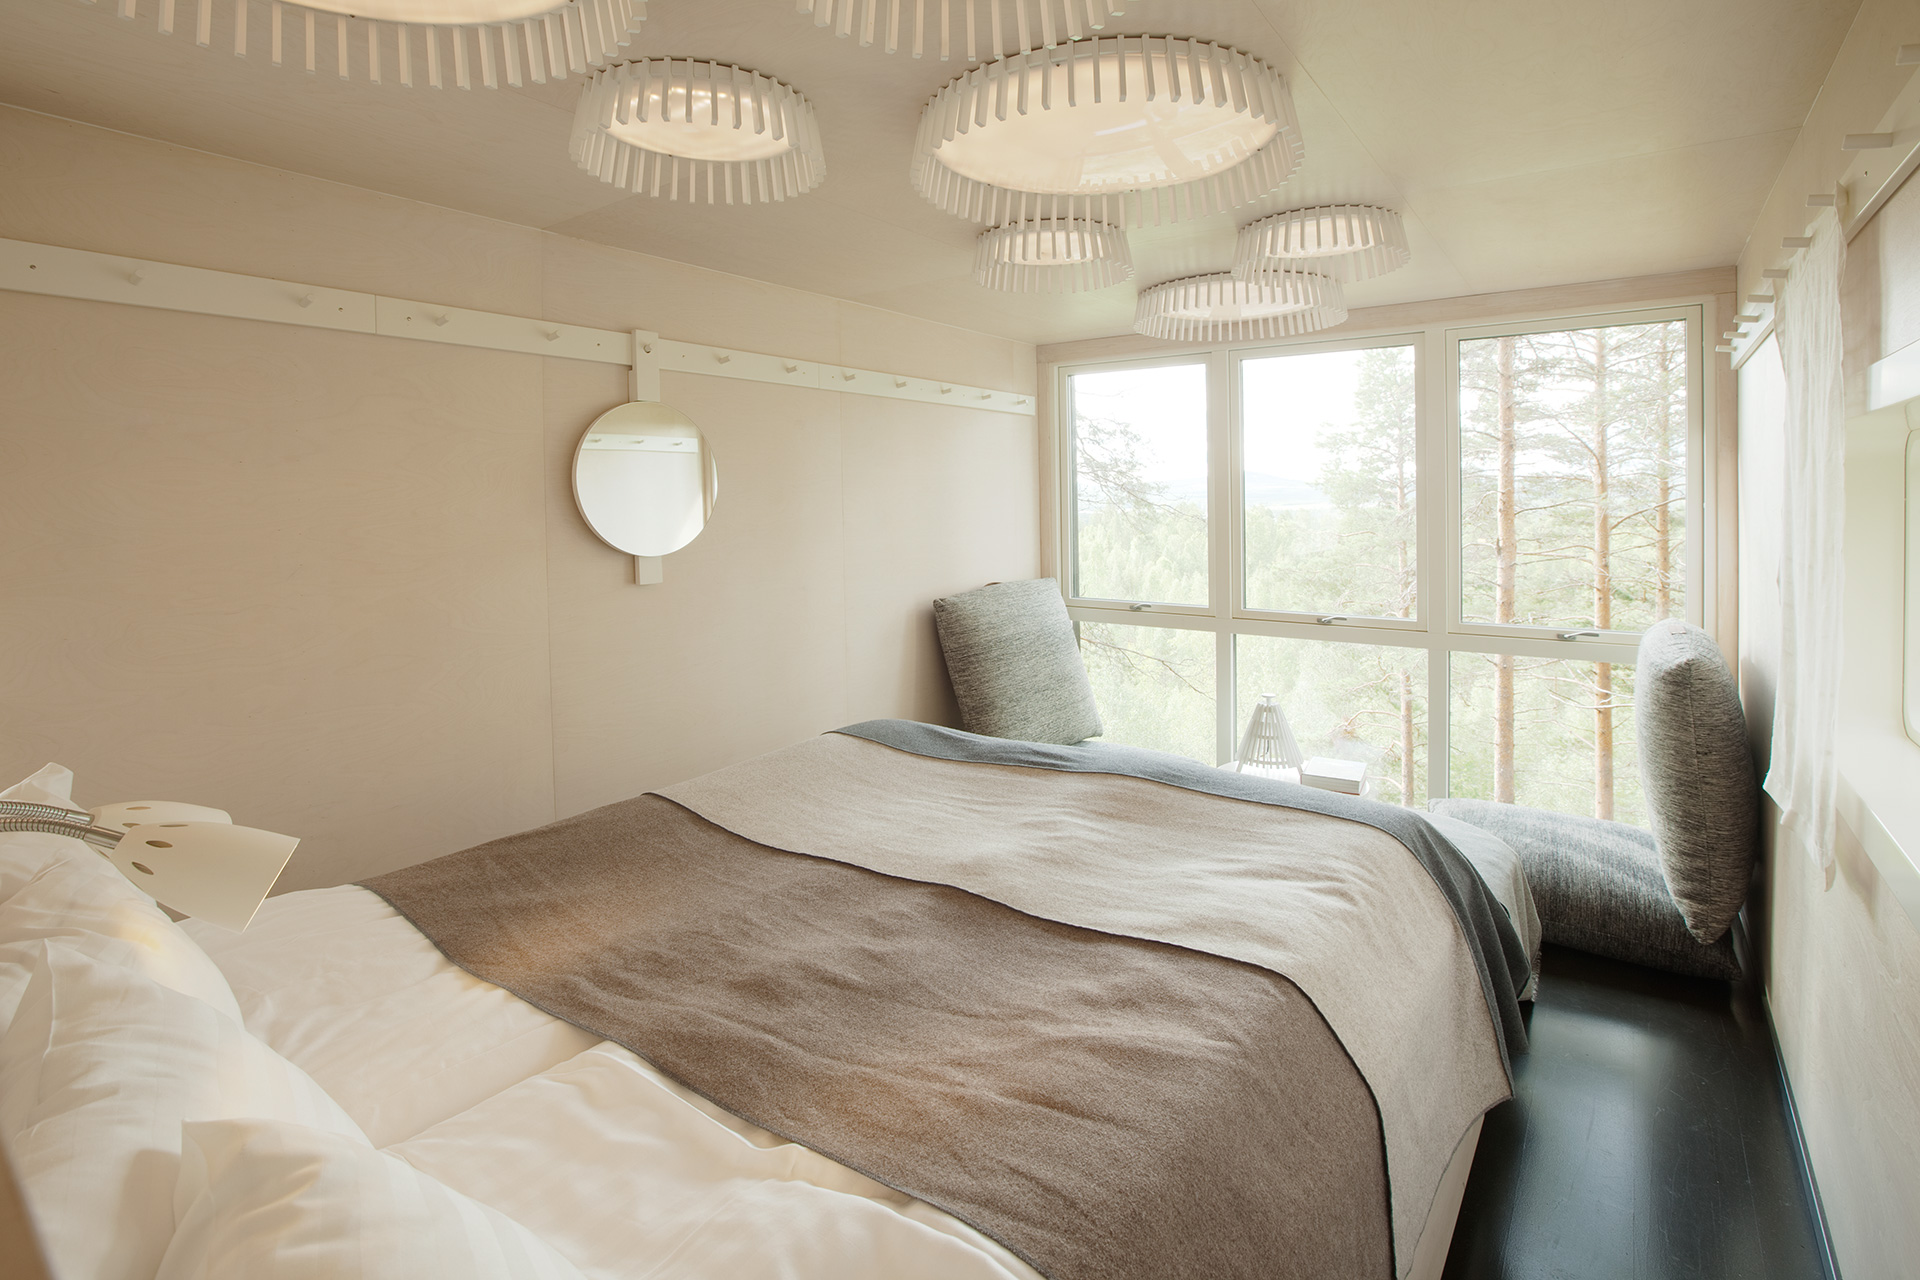 Interiors of a room at the Treehotel | Treehotel | Kent, Britta Lindvall | STIR